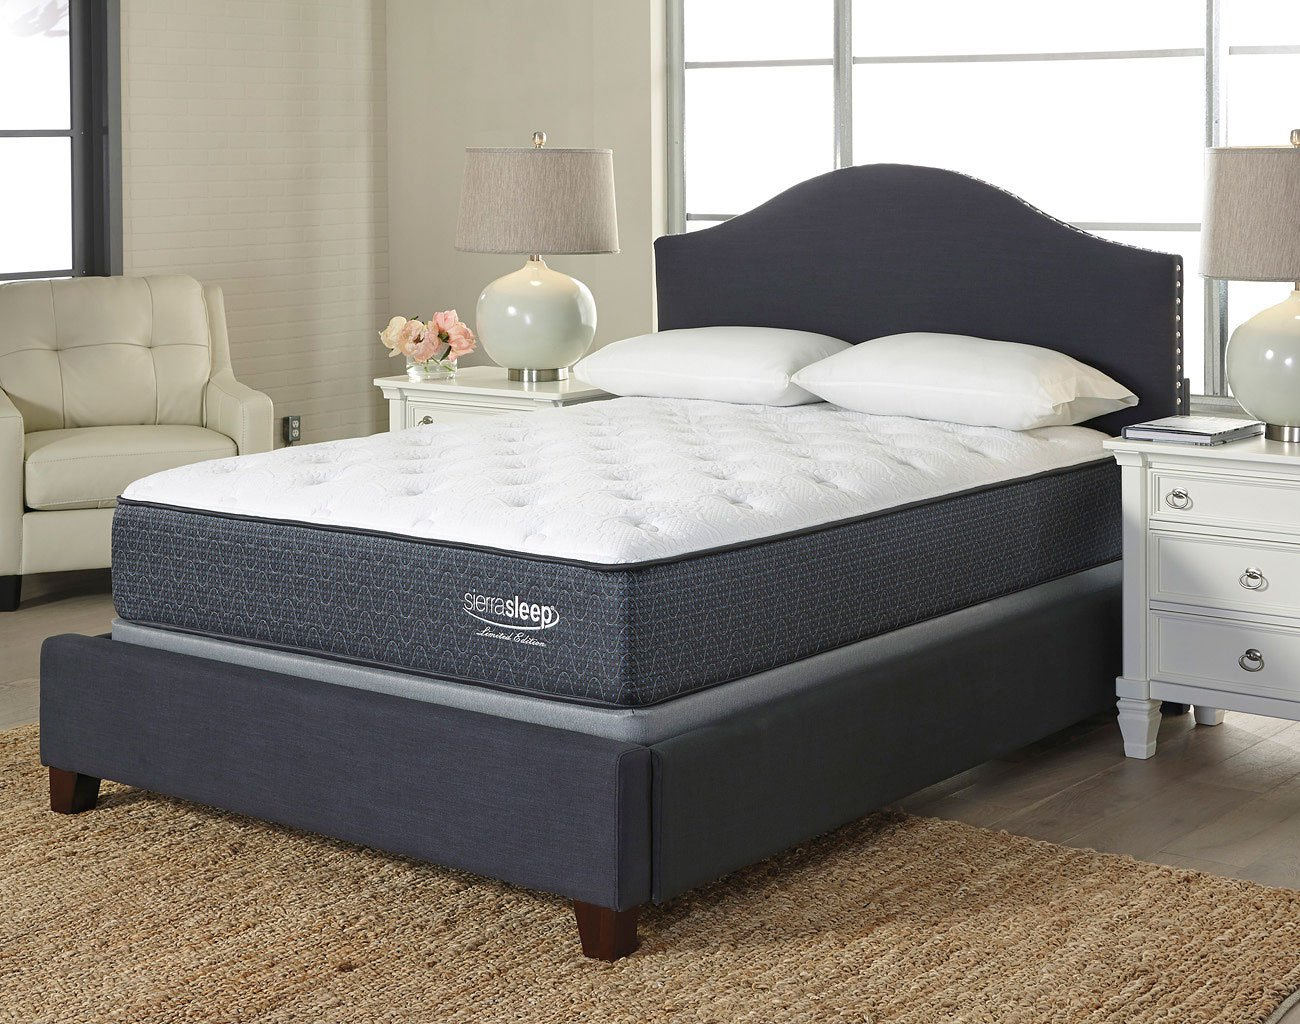 Limited Edition Plush Mattress Mattresses Bedroom